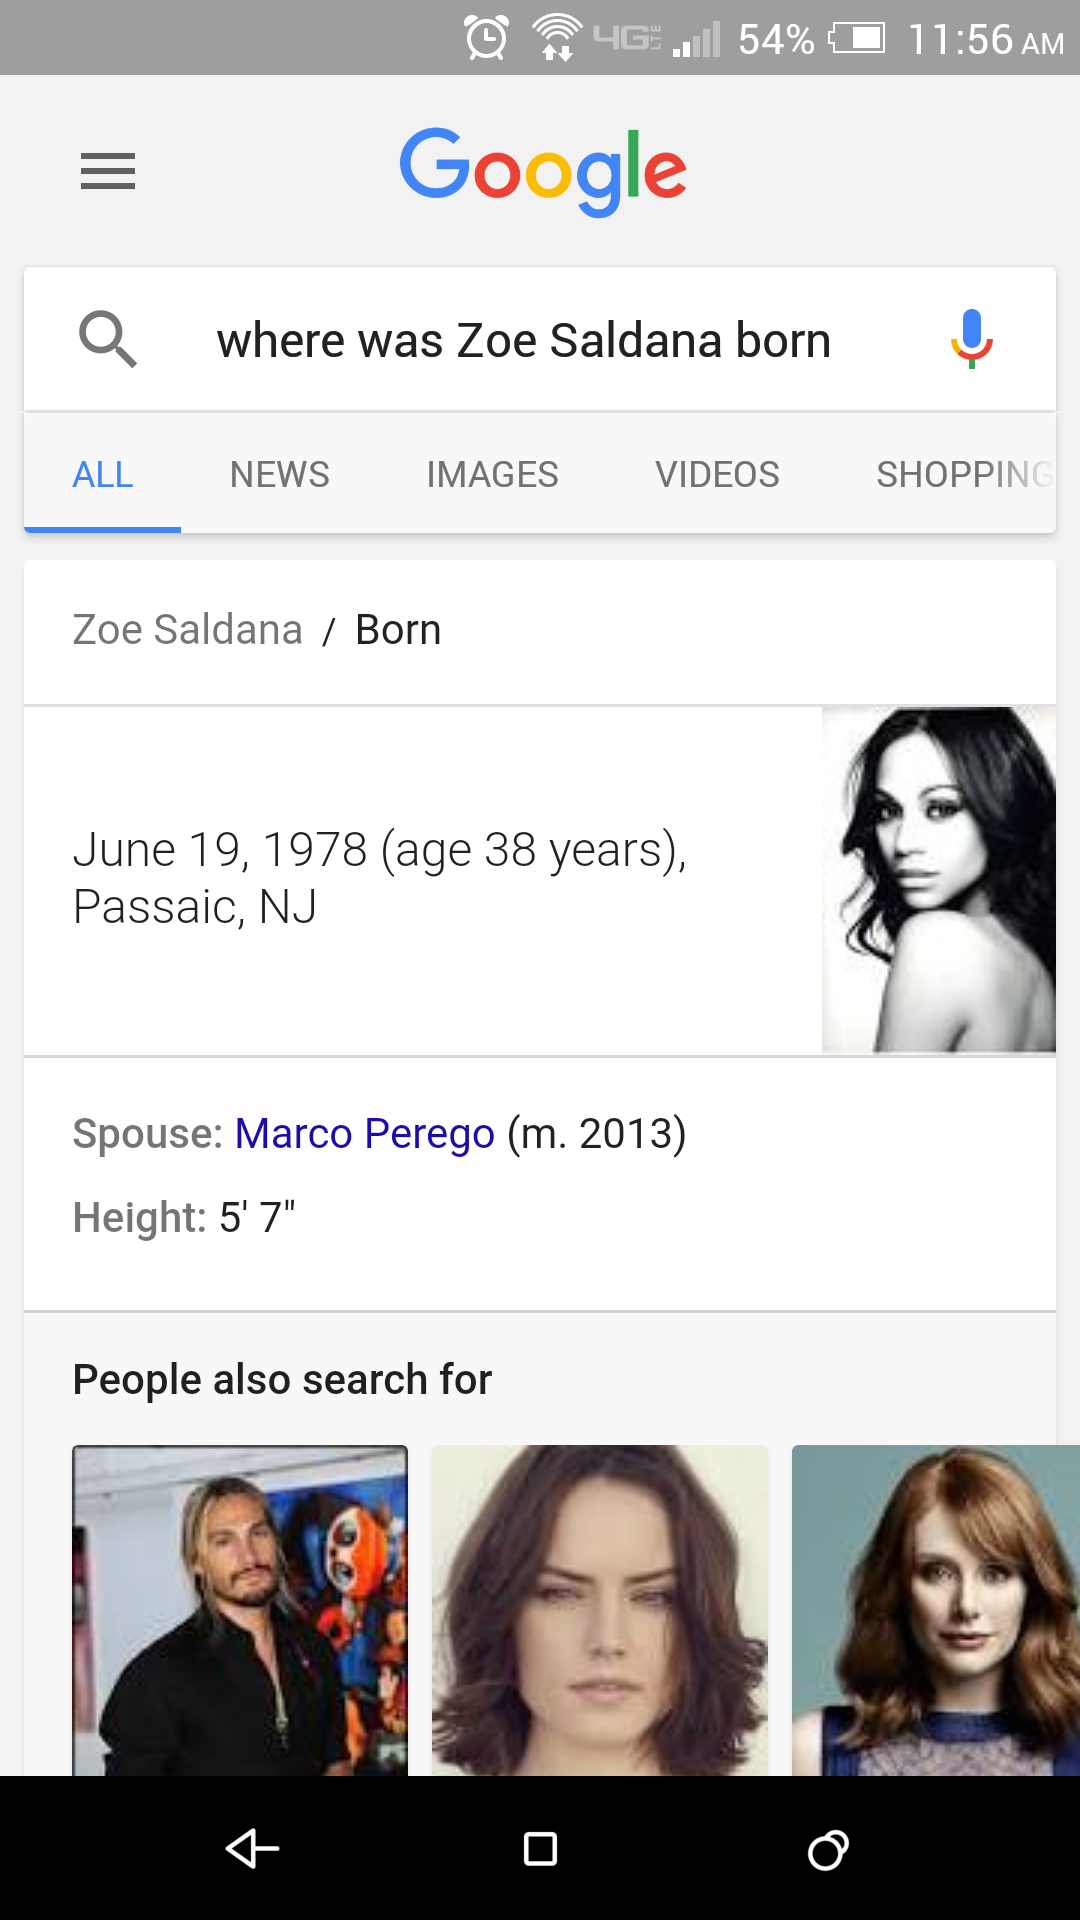 Image result for google voice search zoe saldana character